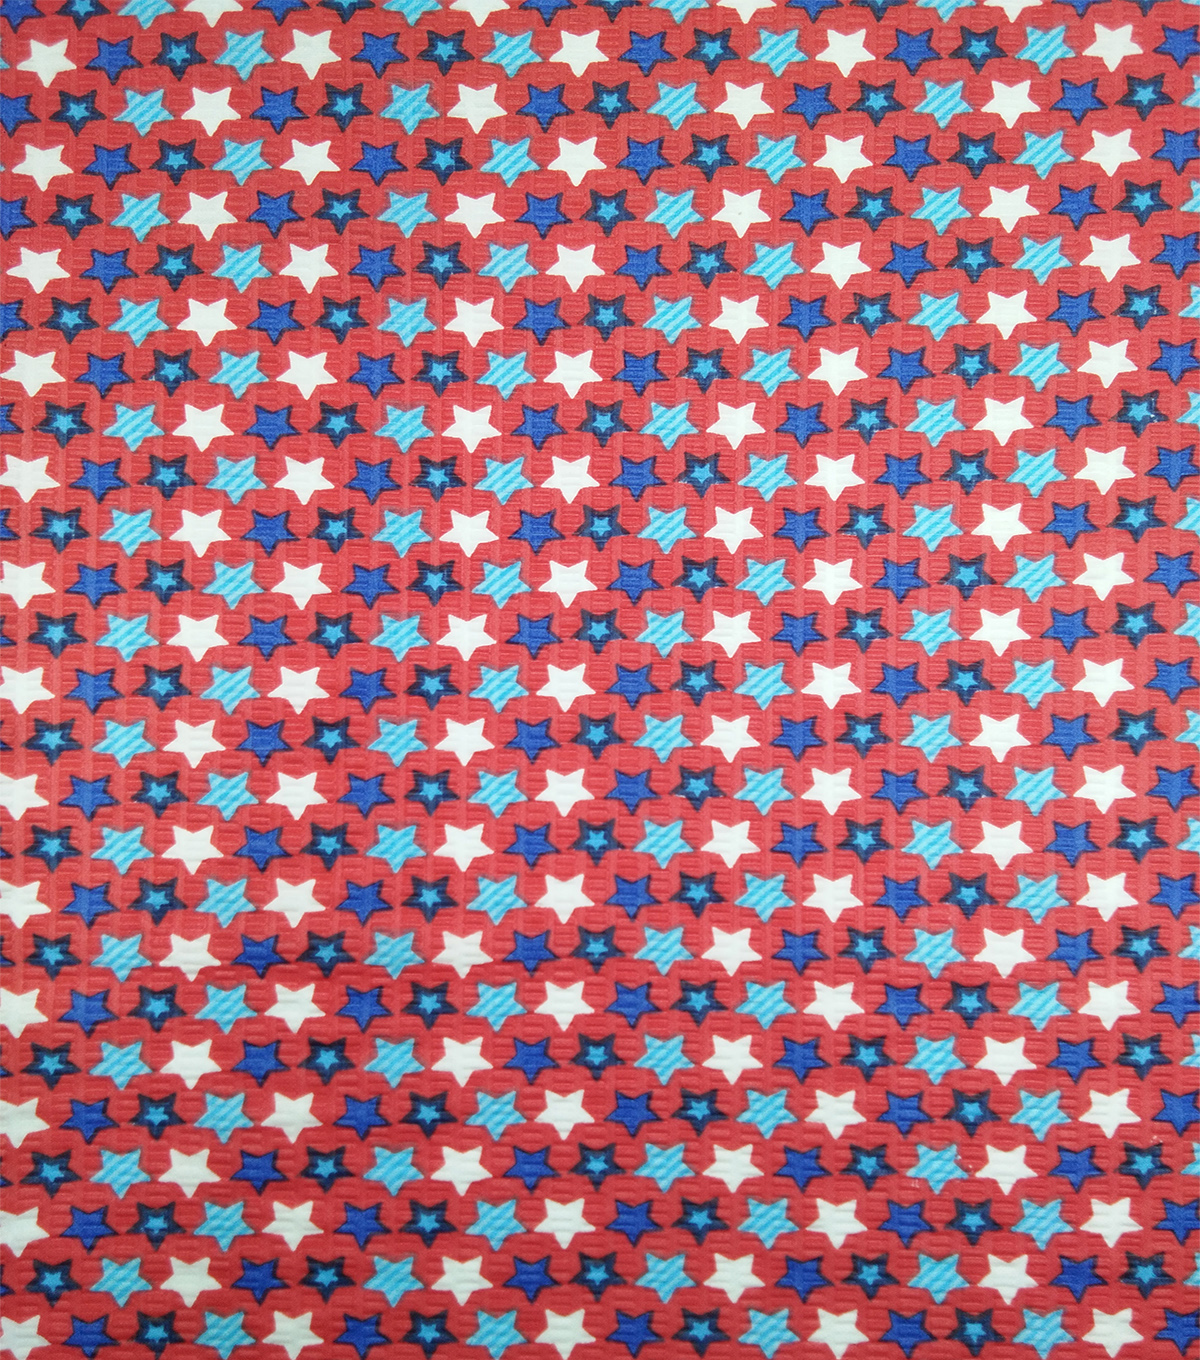 Doodles Textured Fabric 43\u0027\u0027-Red, White & Blue Star Spangled